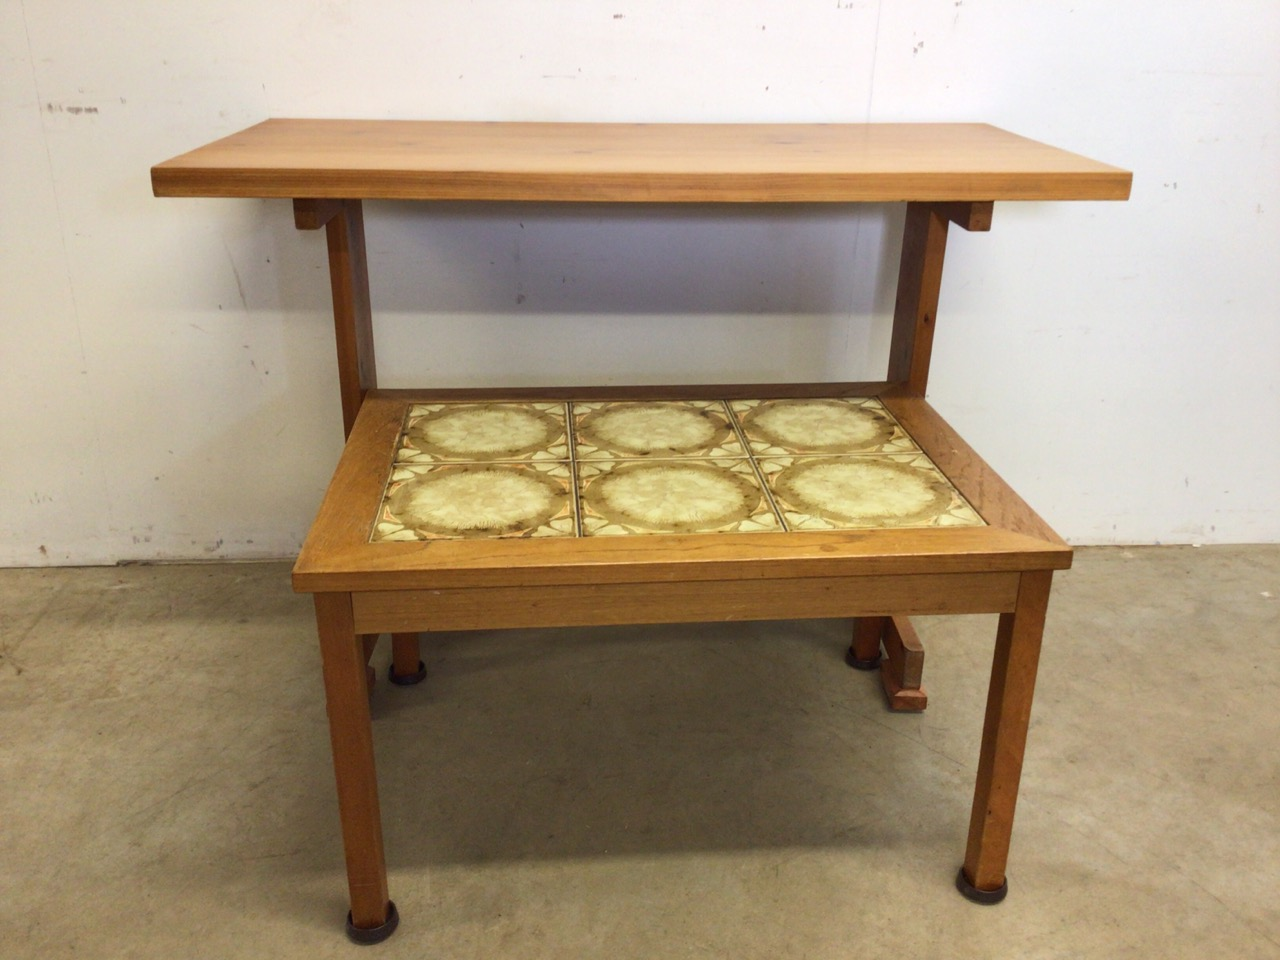 A pine table also with a tiled topped coffee table. W:107cm x D:52cm x H:74cm